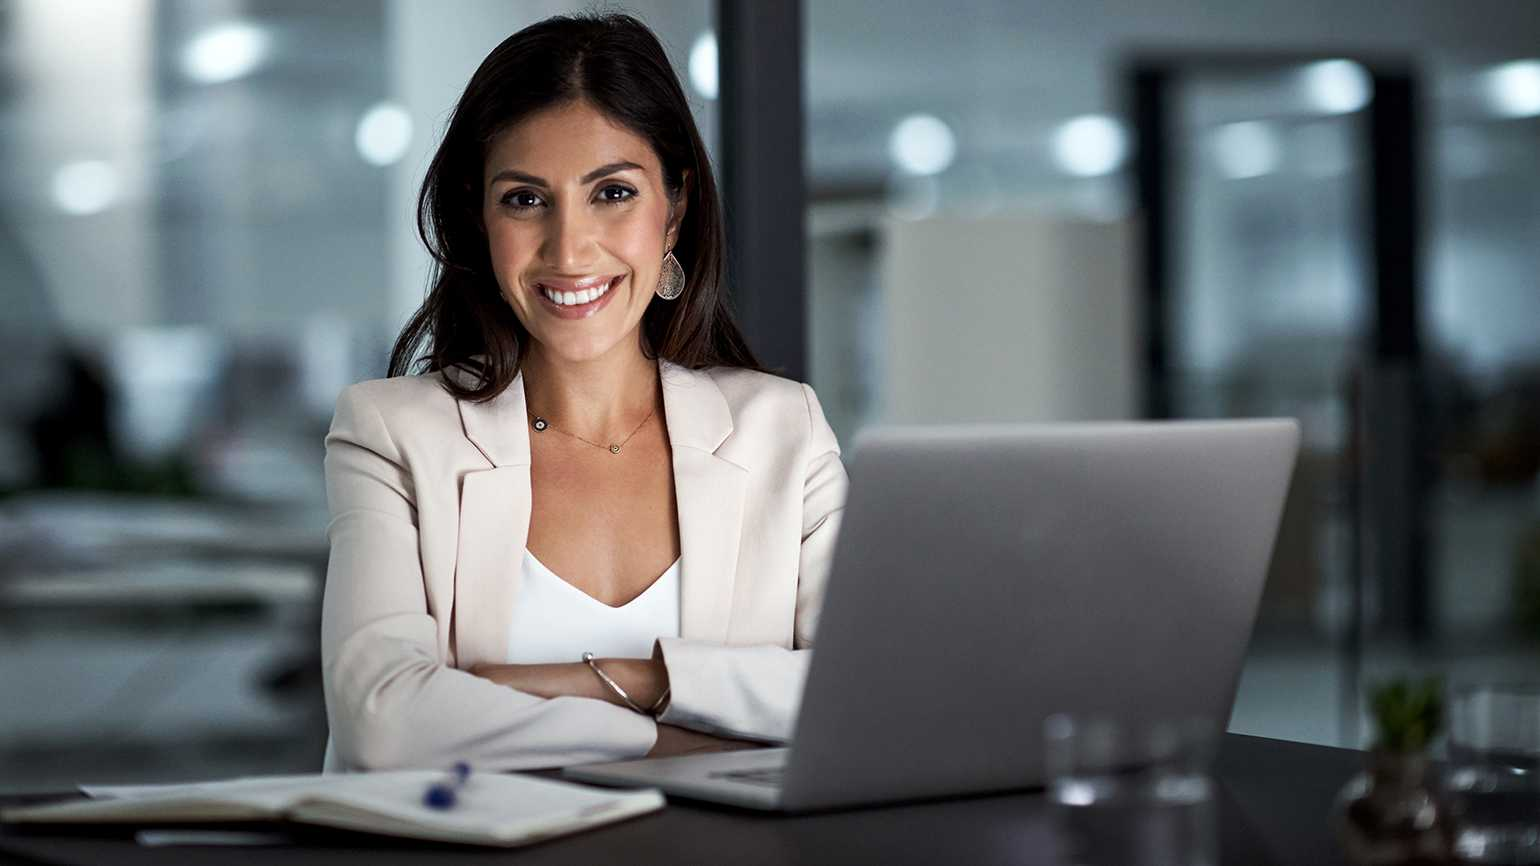 A woman who works in an office looks up from her computer with a smile